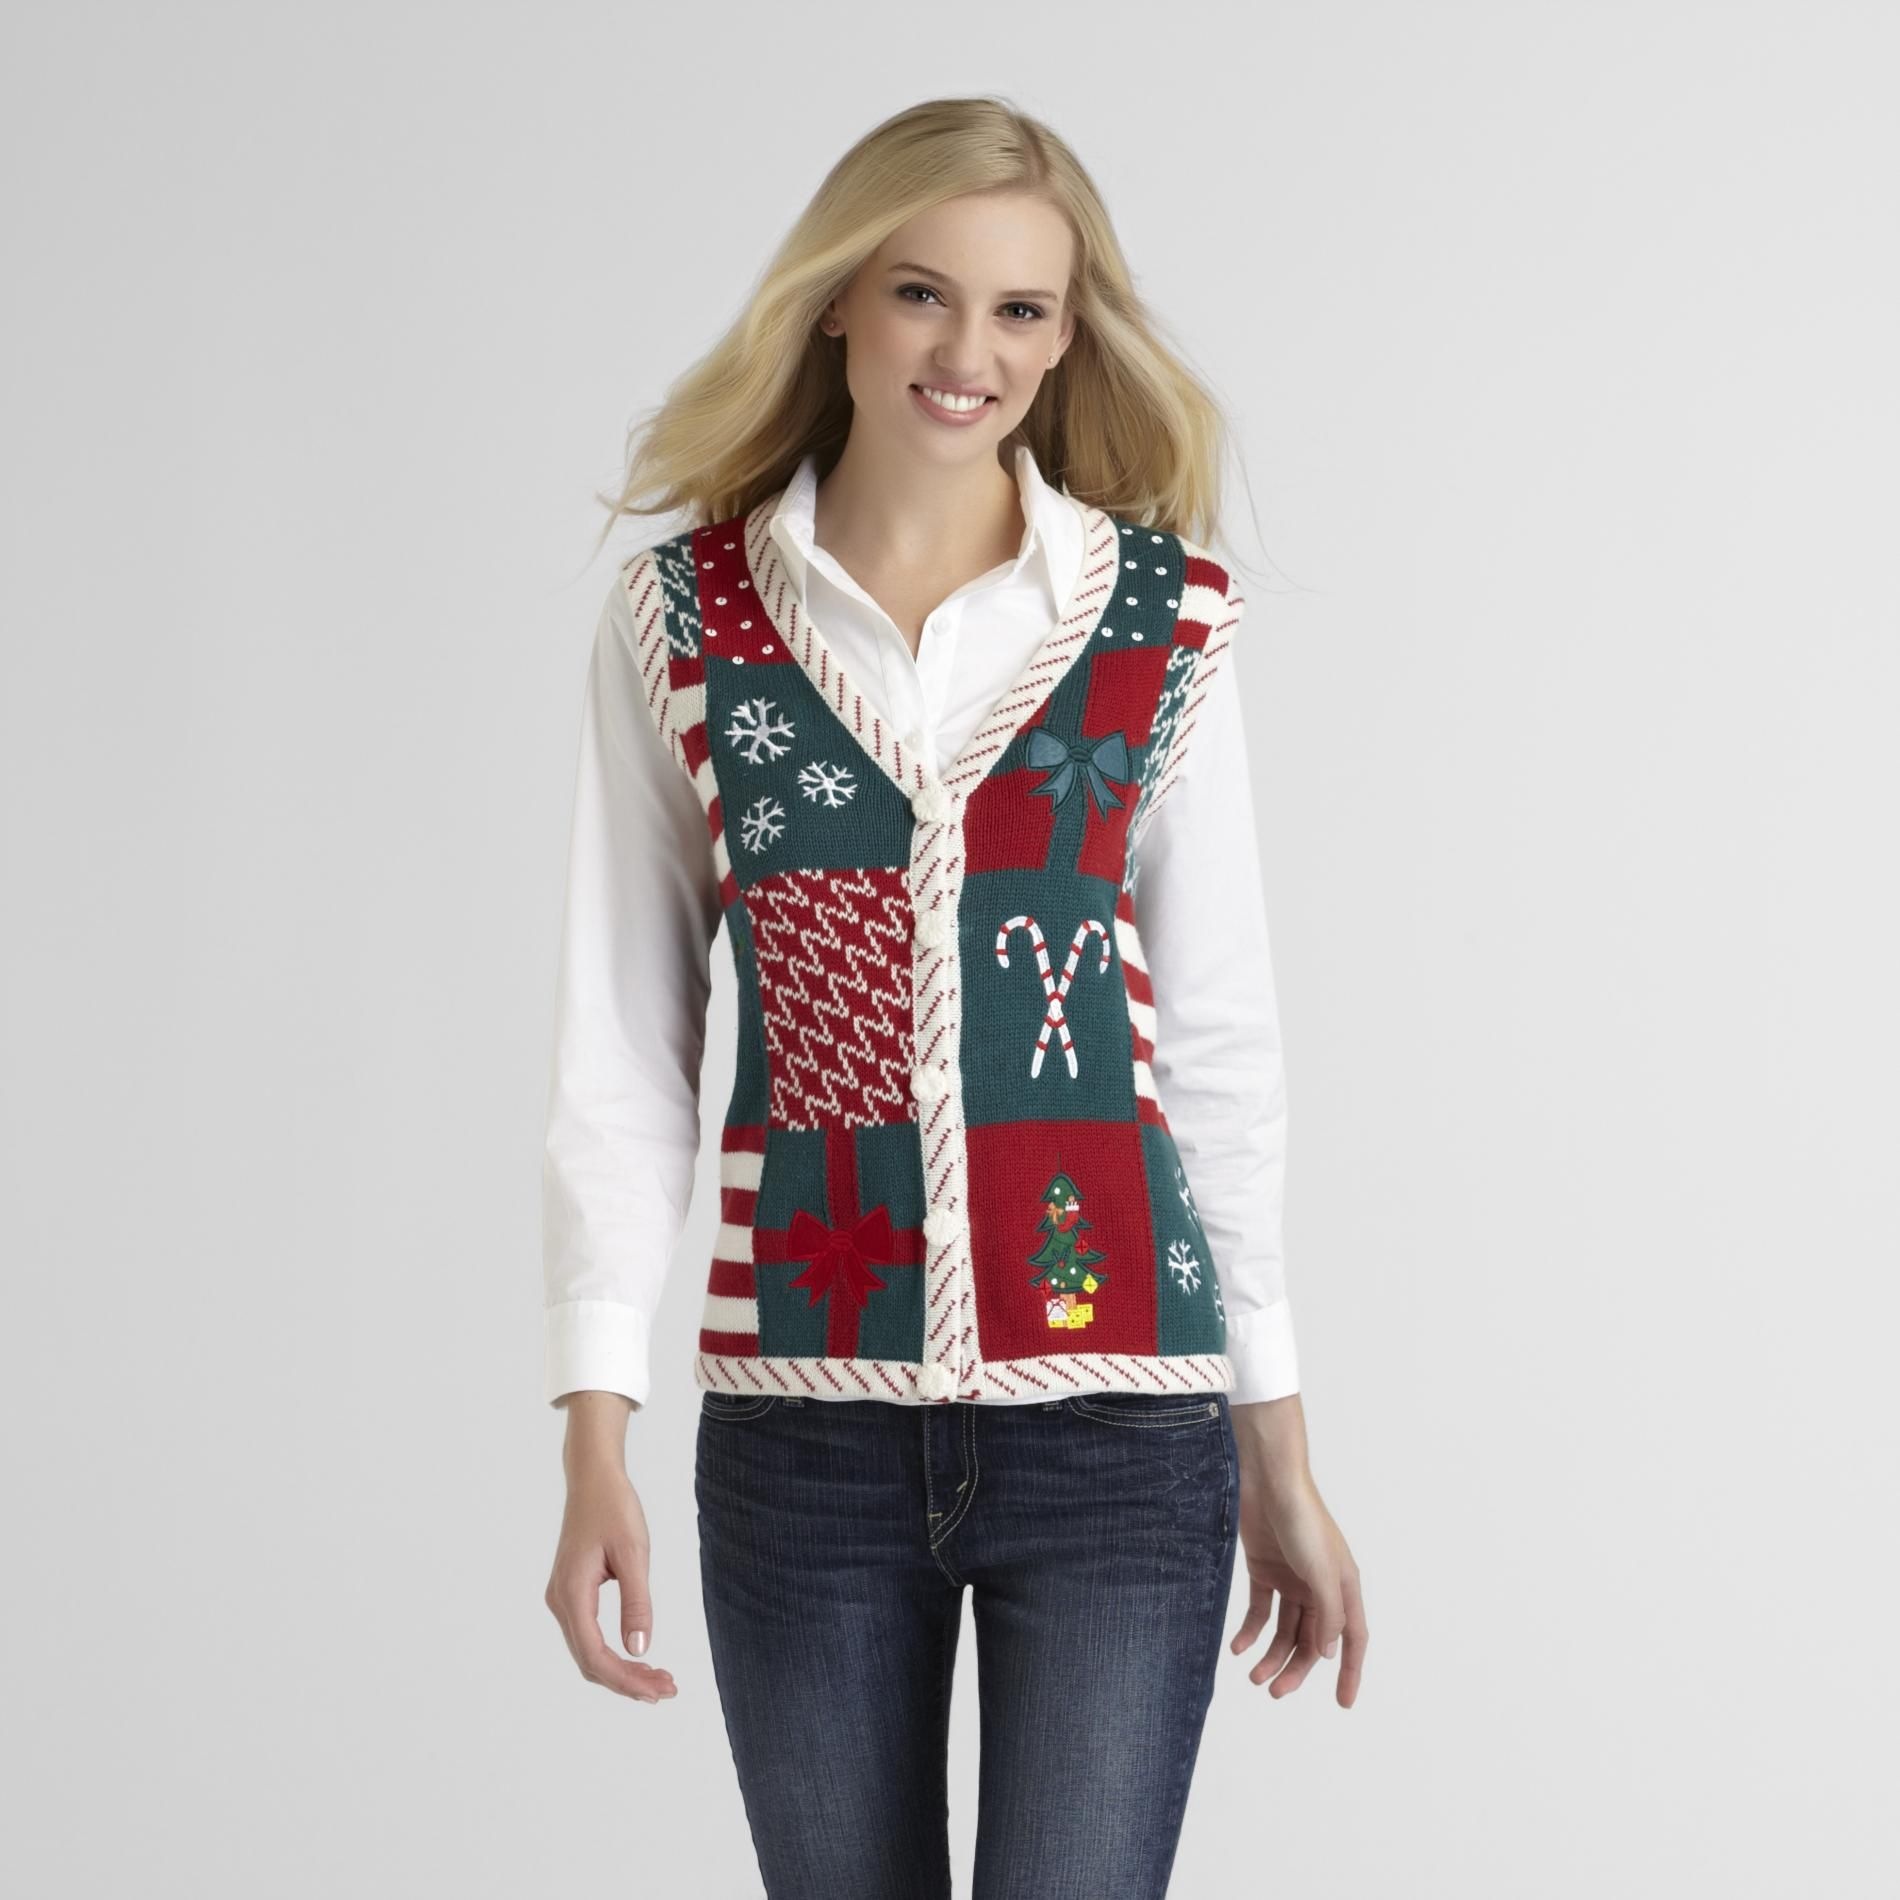 Holiday Editions- -Women's Christmas Sweater Vest - Embroidered ...